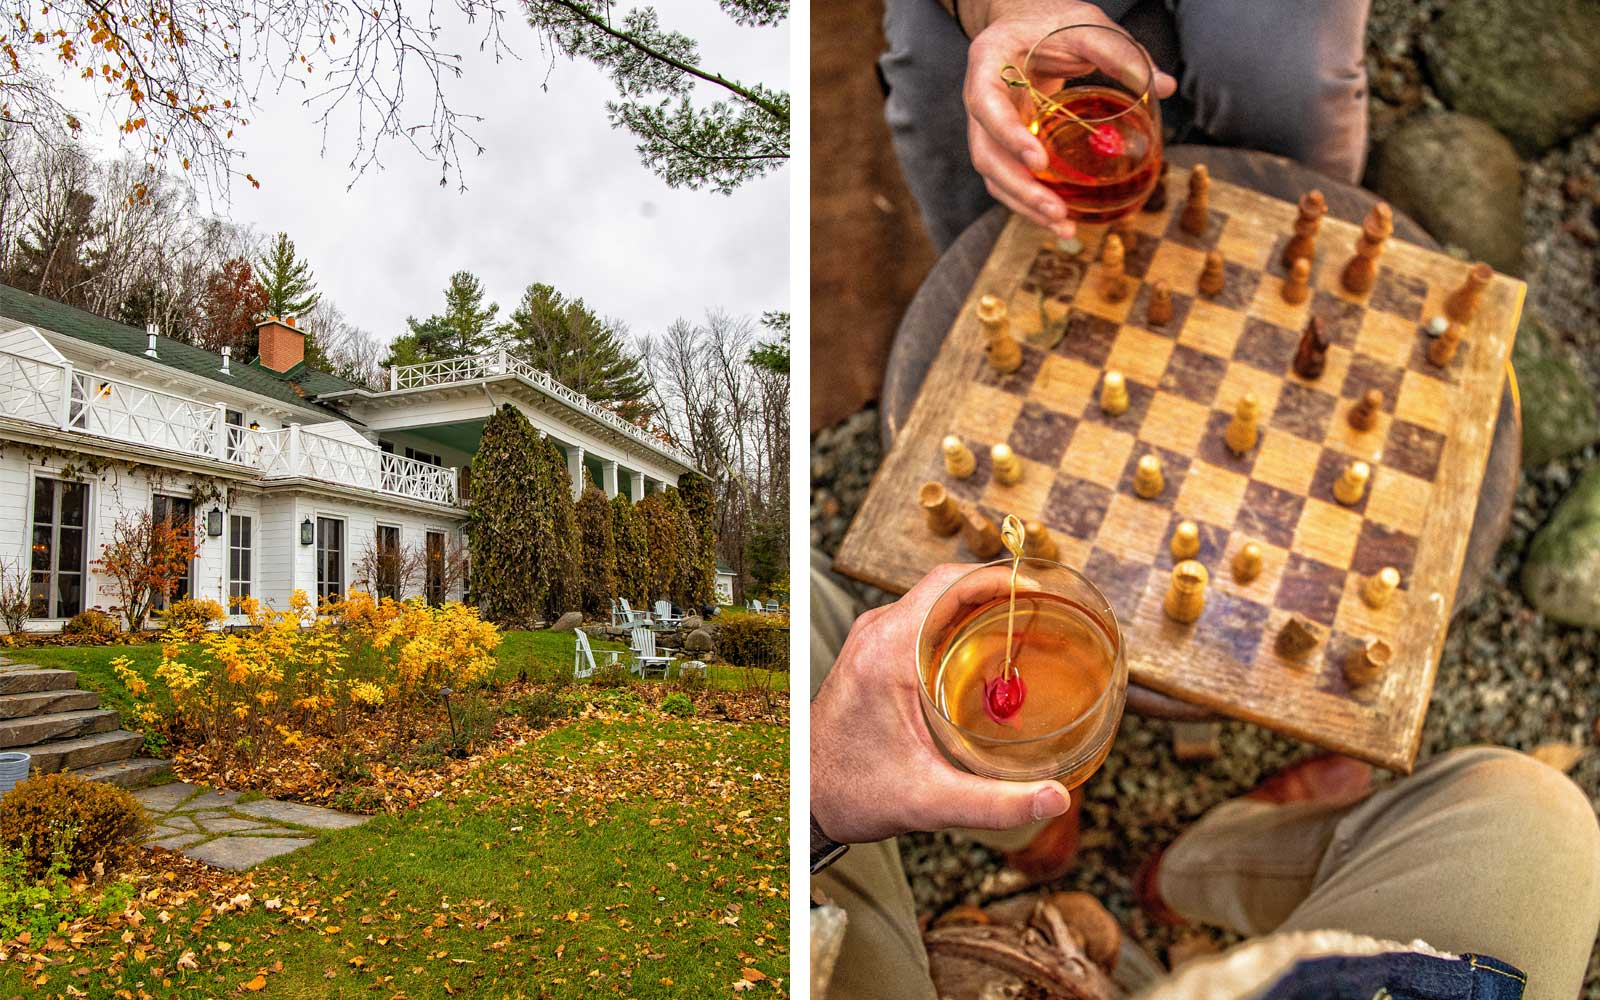 Canada's Coziest Getaway Includes Fireside Chess, Hard Cider with Monks, and the Best Grilled Cheese